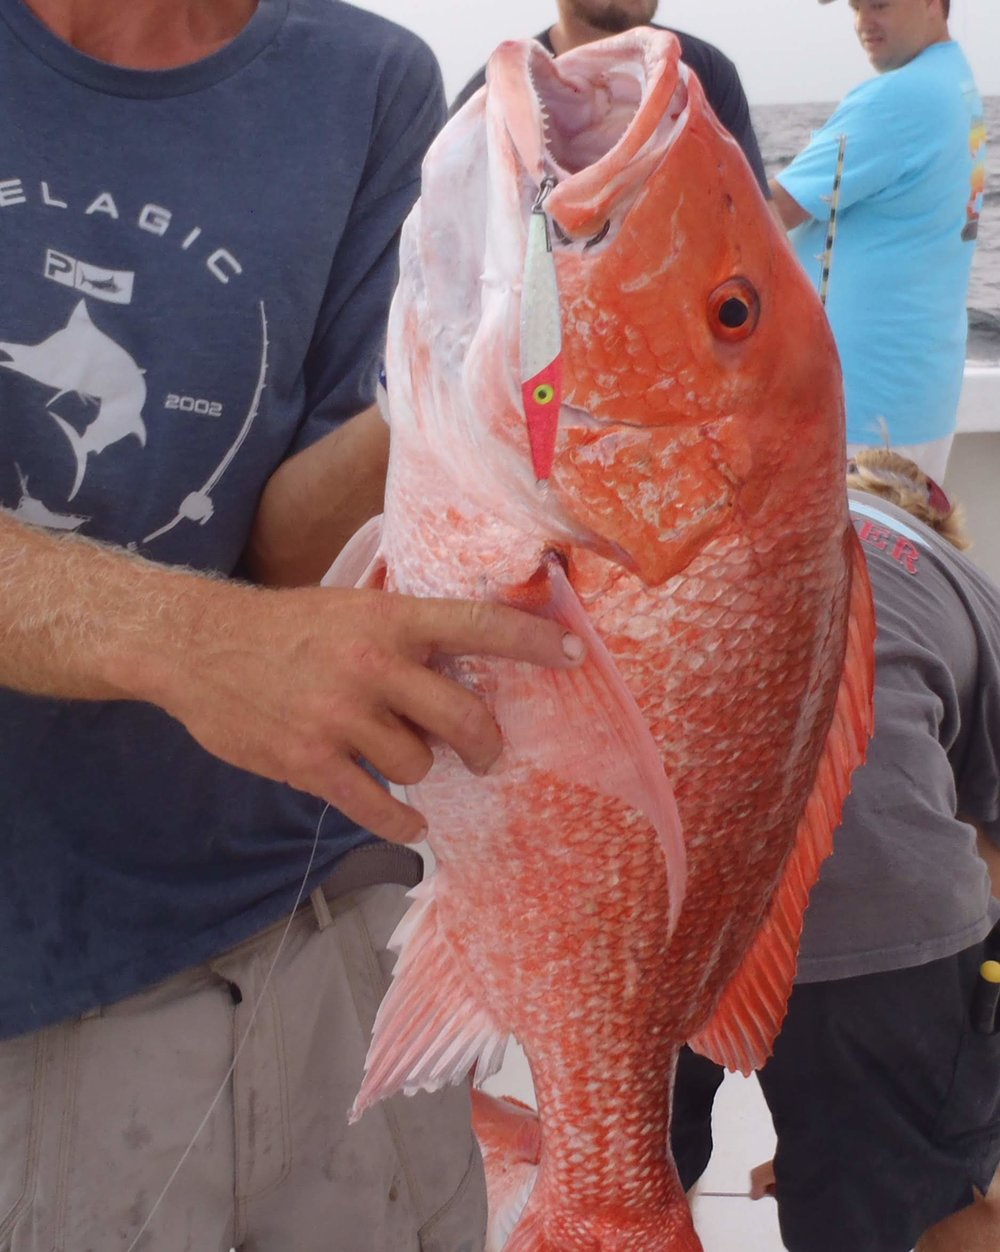 Very nice Red Snapper. 3 oz Fluorescent Pink Glow. RHB